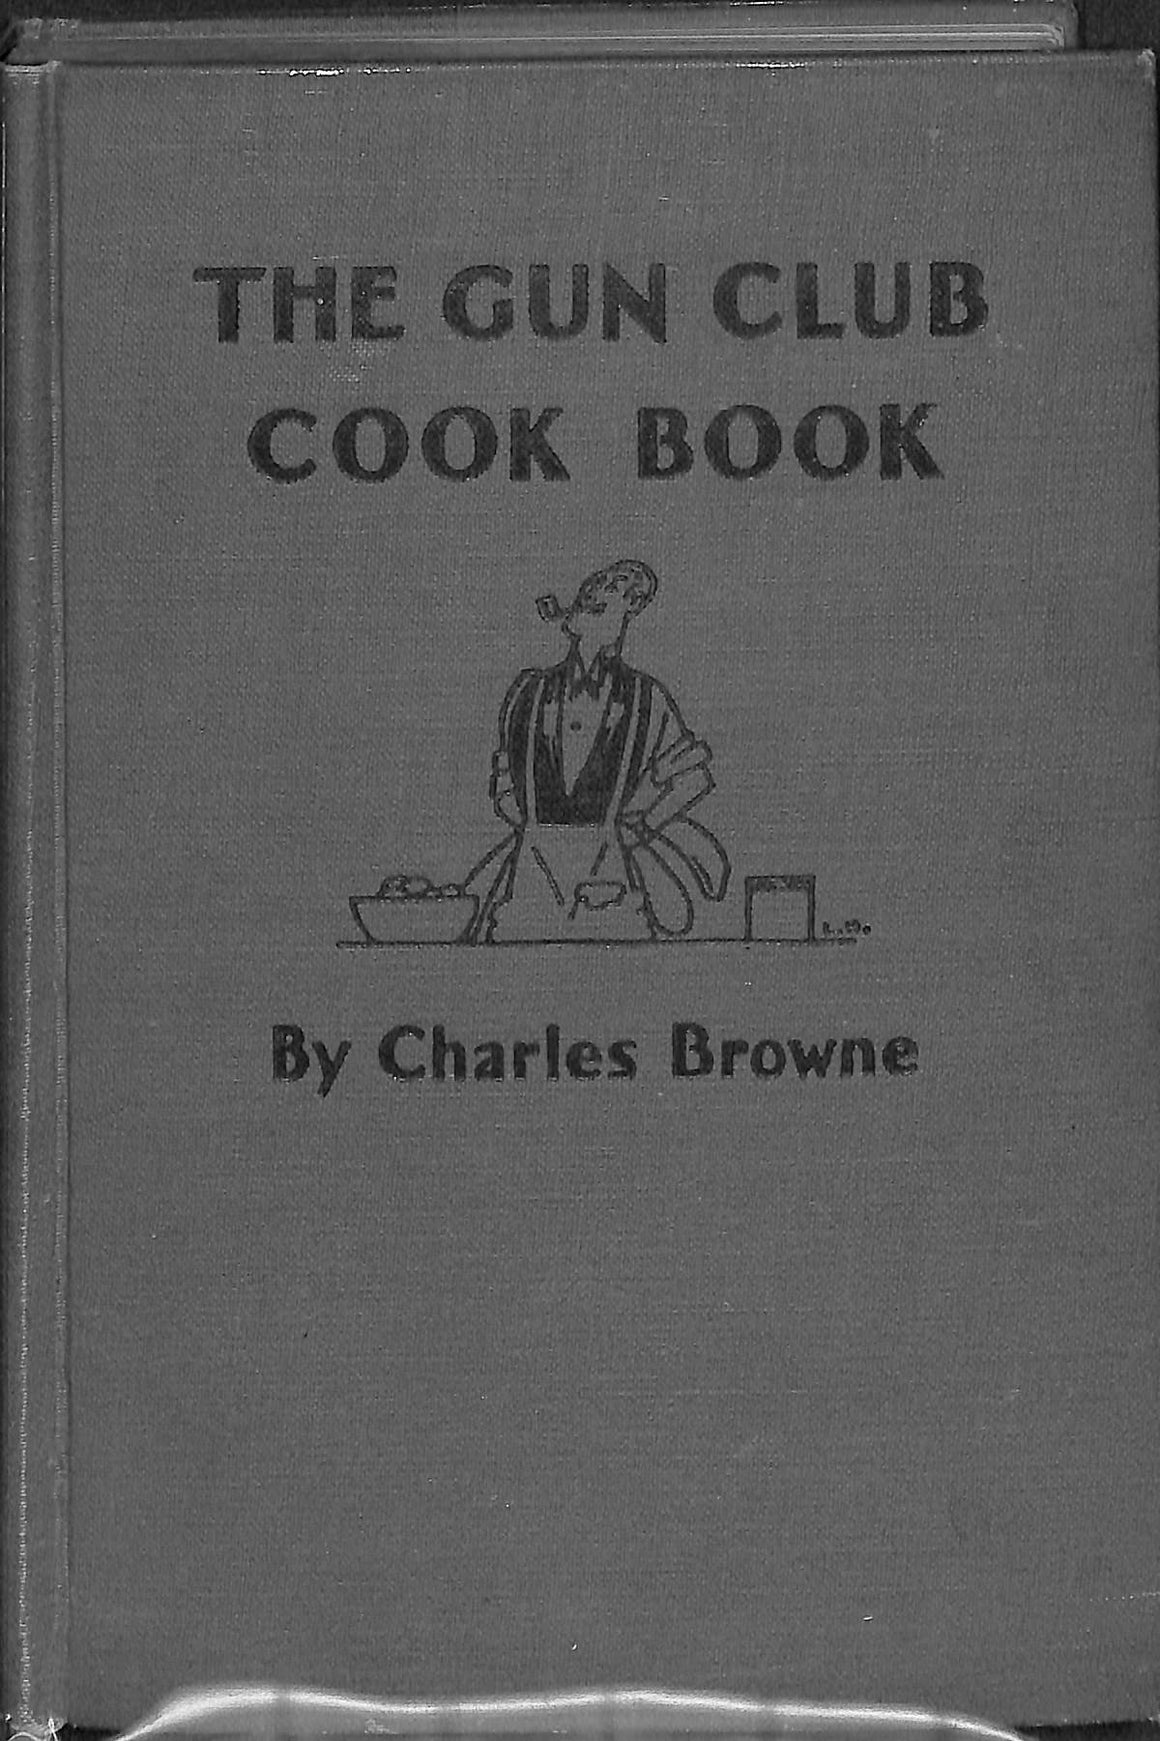 The Gun Club Cook Book